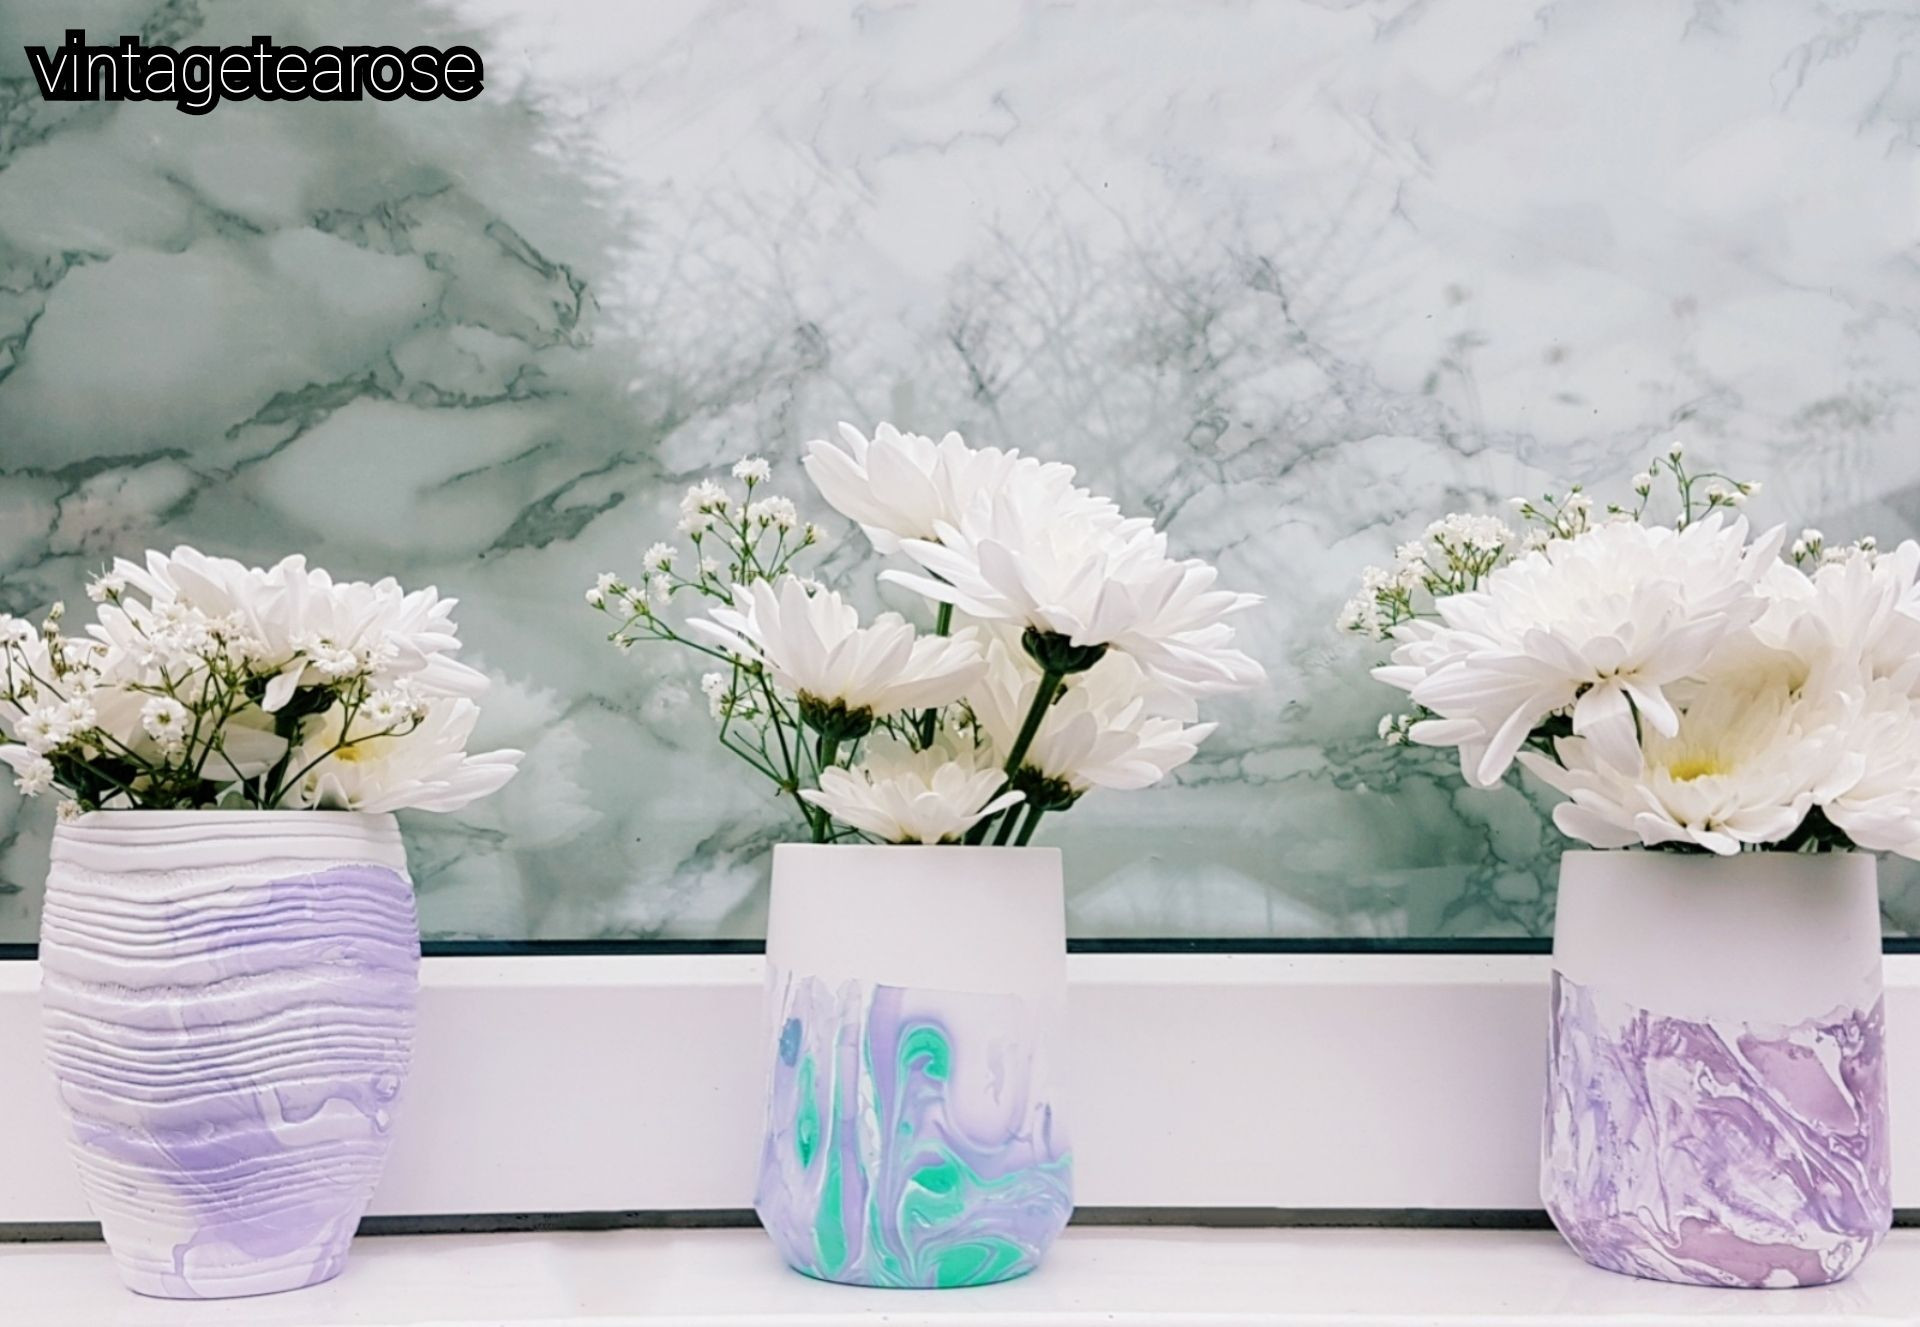 bouquet vase holder of how to marble containers storage vase stationery holder brush with how to marble containers storage vase stationery holder brush holder christmas present gift ideas diy easy quick simple diy nail vanish polish